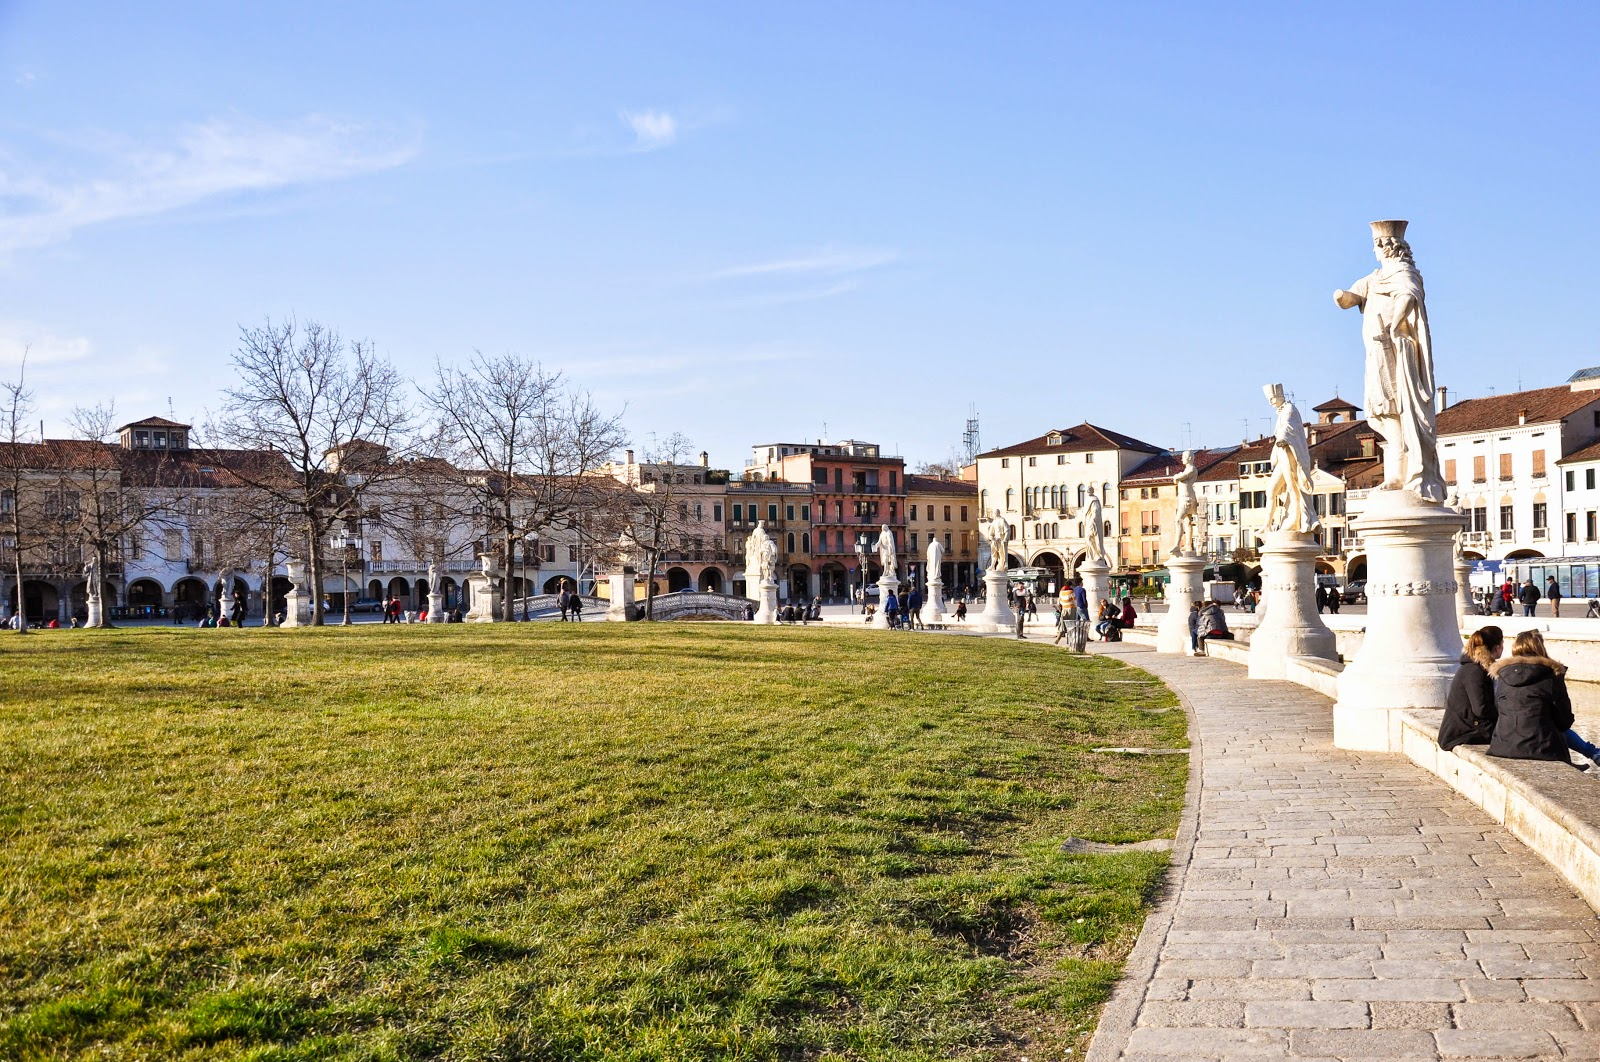 Padua's Prato della Valle is the largest square in Italy